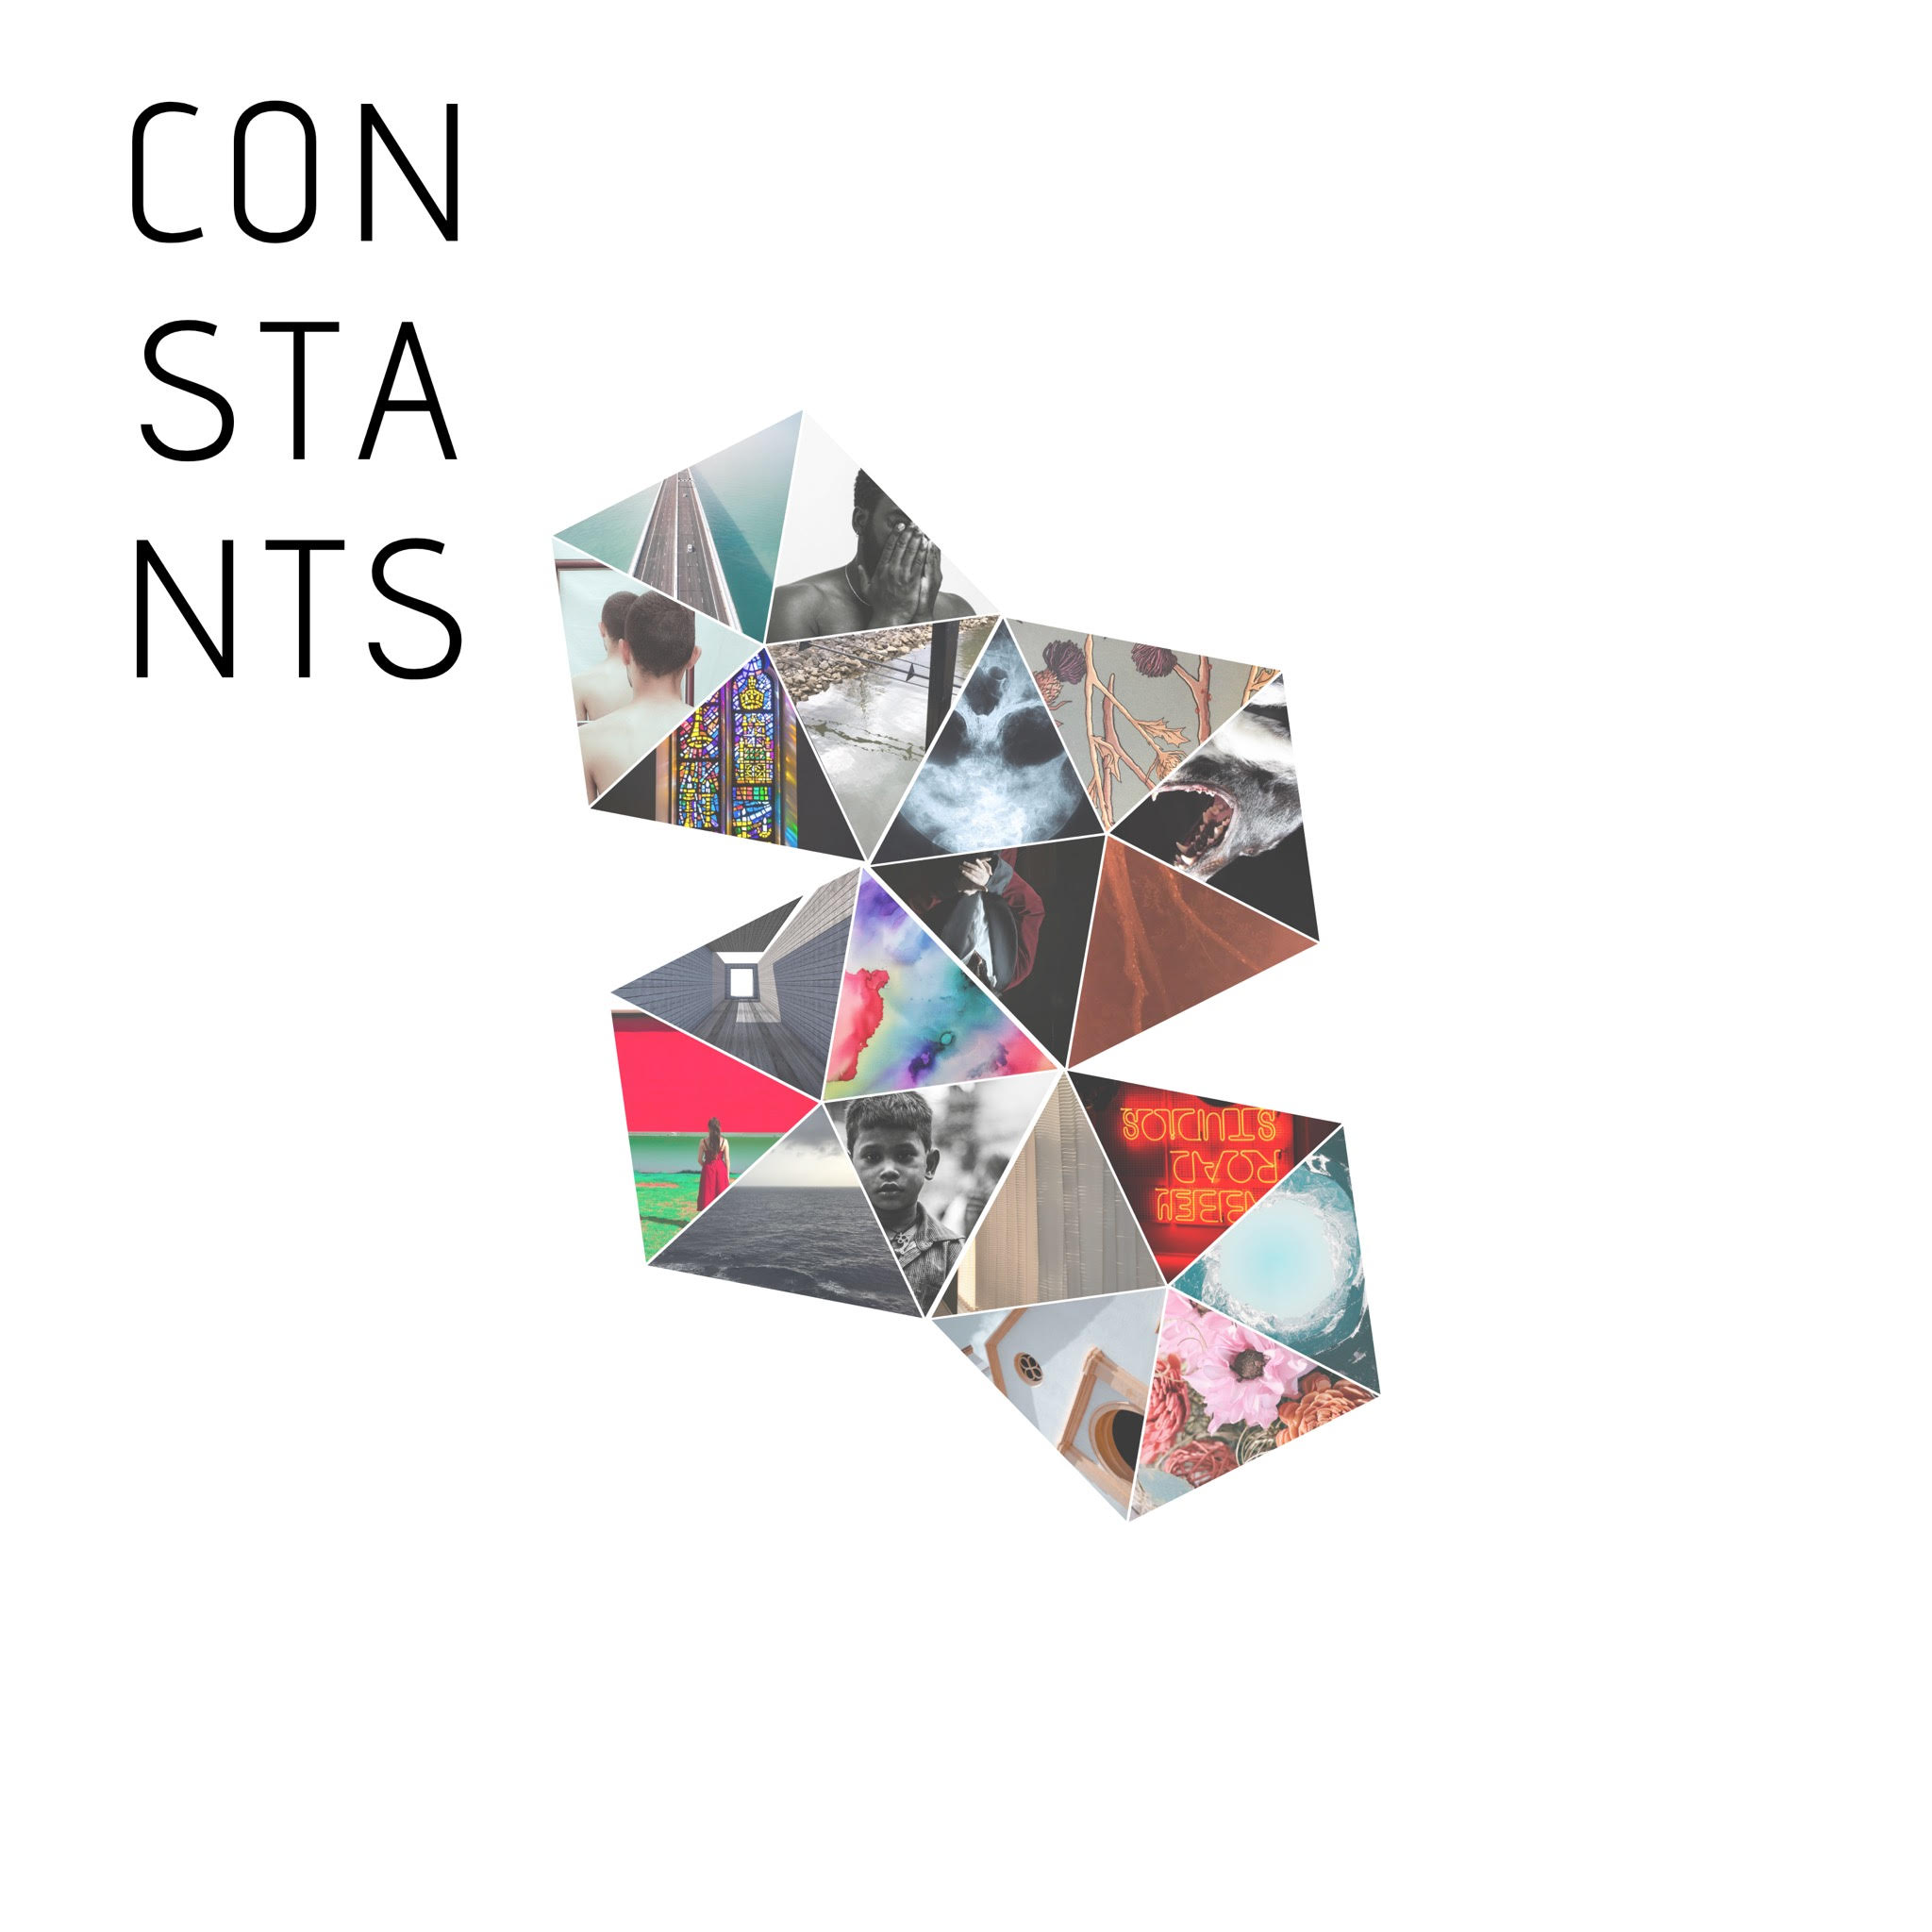 CONSTANTS is a ten-part fiction anthology series... - Featuring original stories from across the collapsing omniverse, Constants dips it's toes into occult societies, elaborate hidden tunnel systems, astral travel and paranormal hauntings. Stories that have been told for generations only to be written off as campfire tales. Dark, foreboding and inevitable.